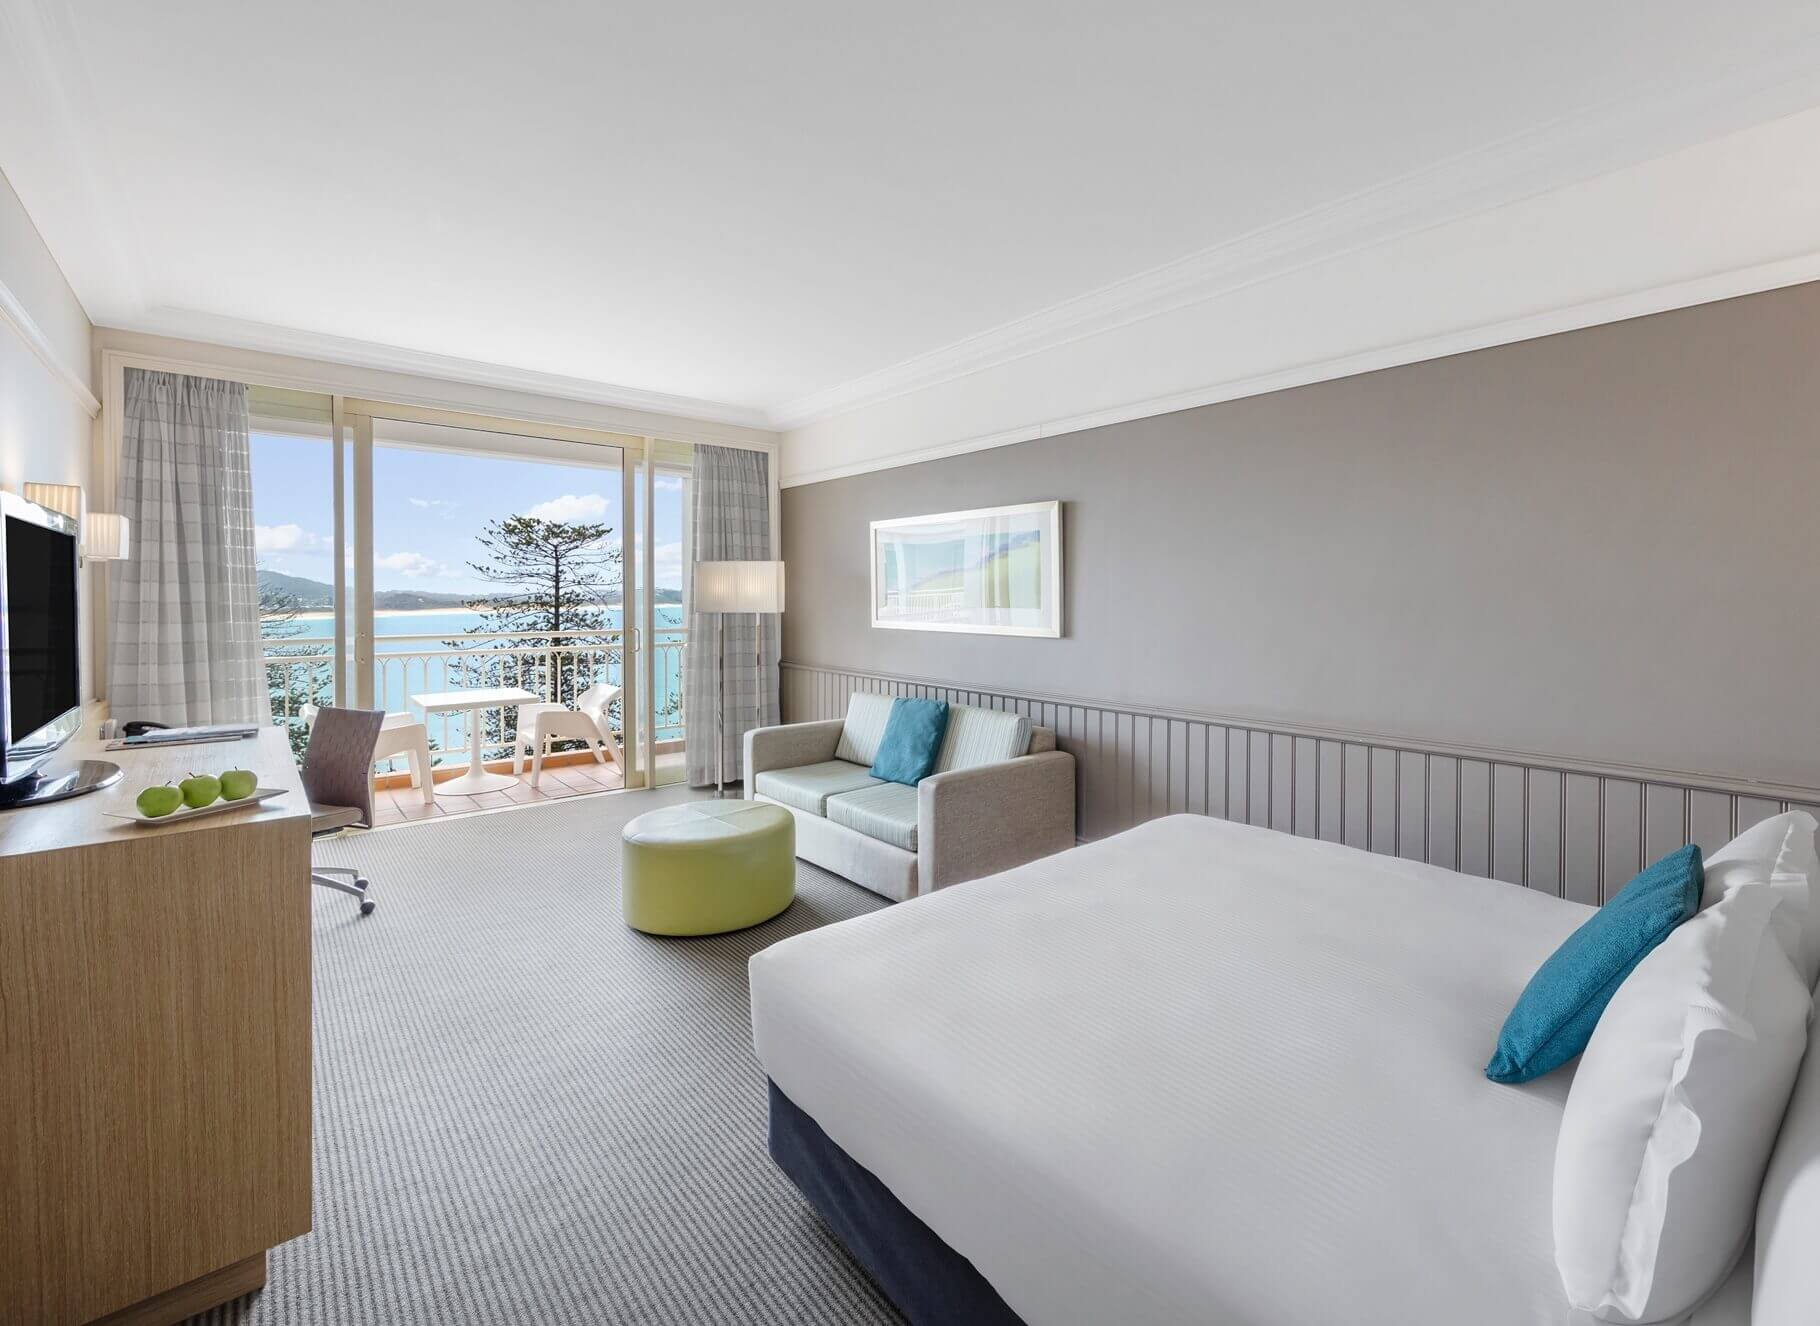 King Ocean View Room Terrigal